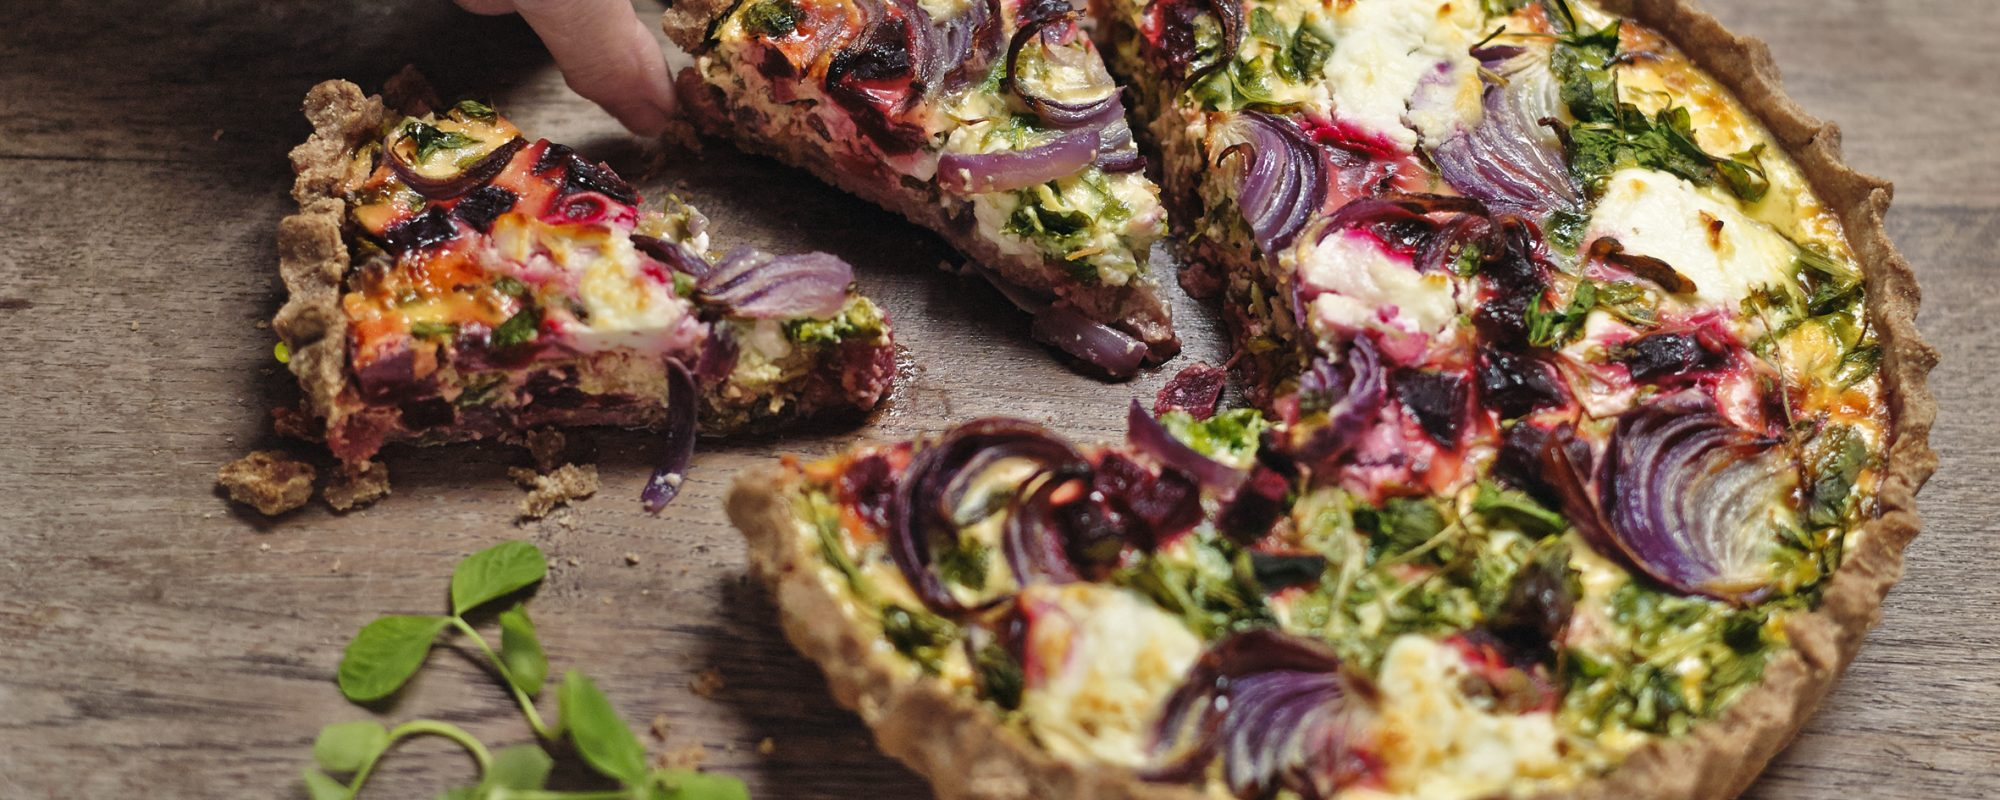 Pea Shoots, Beetroot and Goat's Cheese Quiche